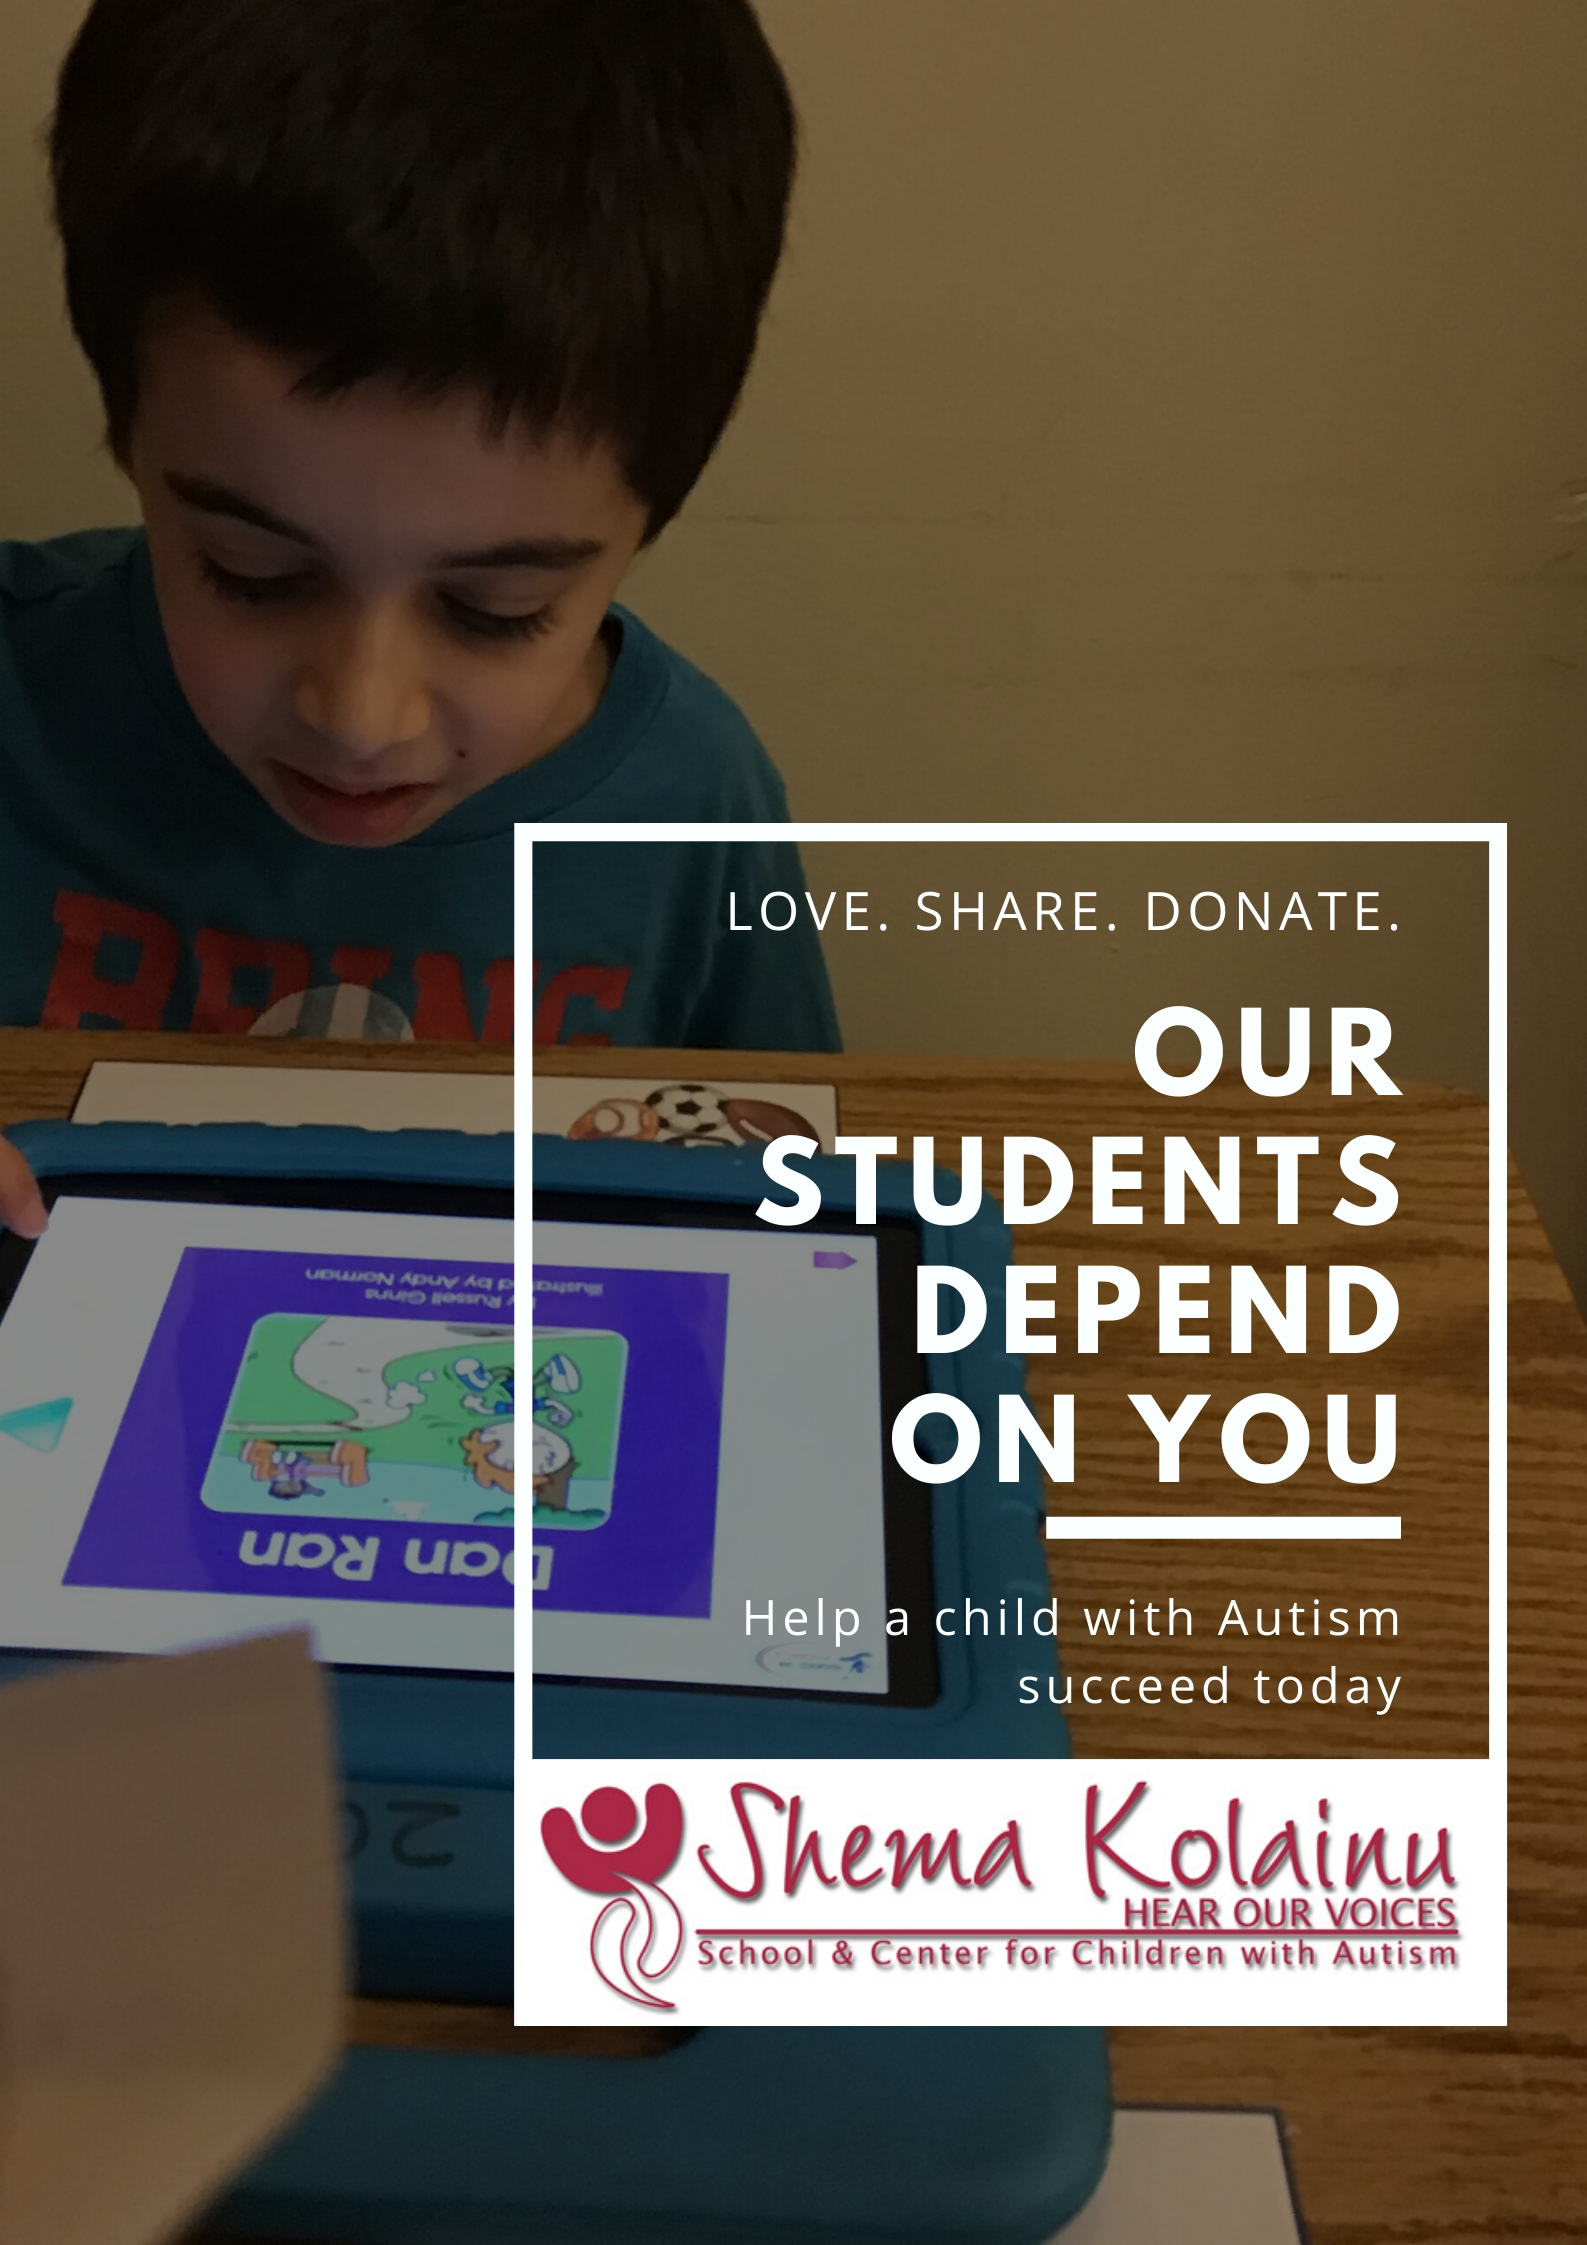 In the face of COVID-19, Shema Kolainu - Hear Our Voices works to inspire the community and serve autistic children and young adults remotely.